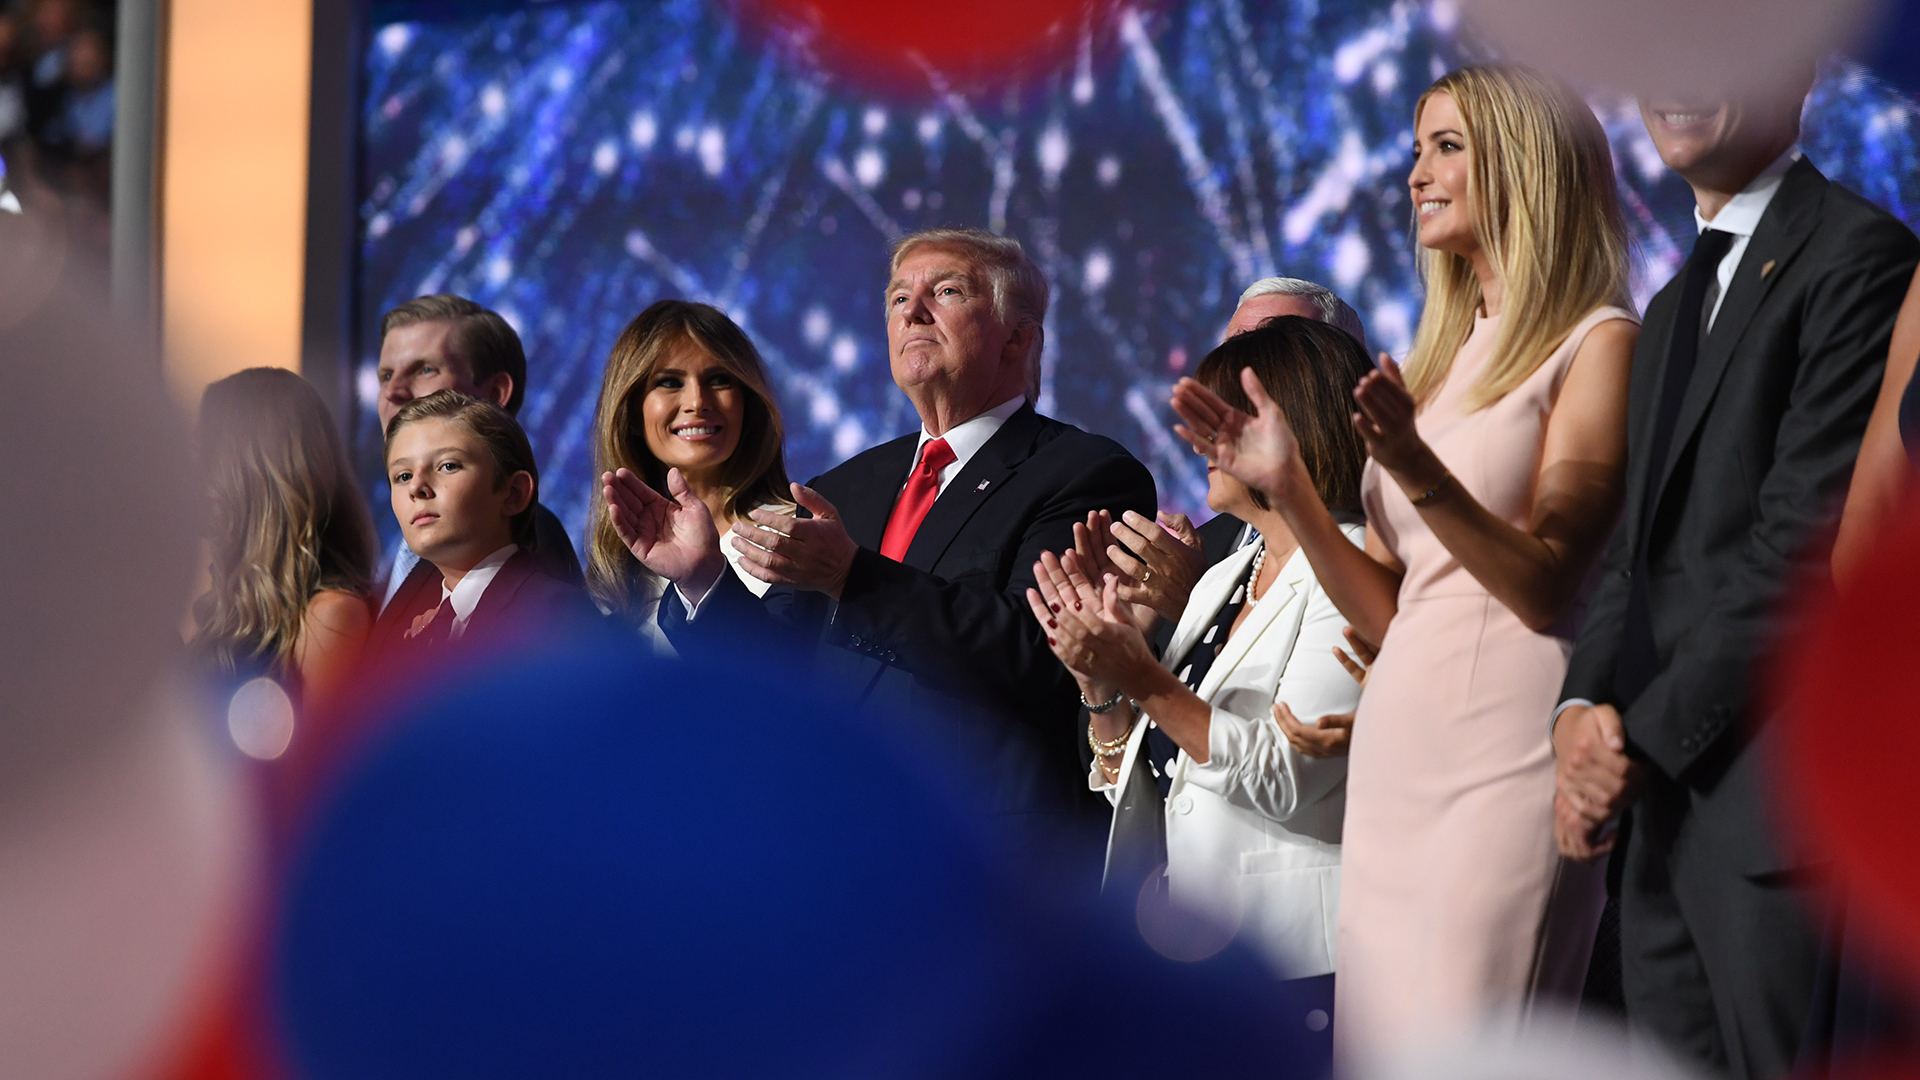 Winners and losers from the final night of the Republican National Convention